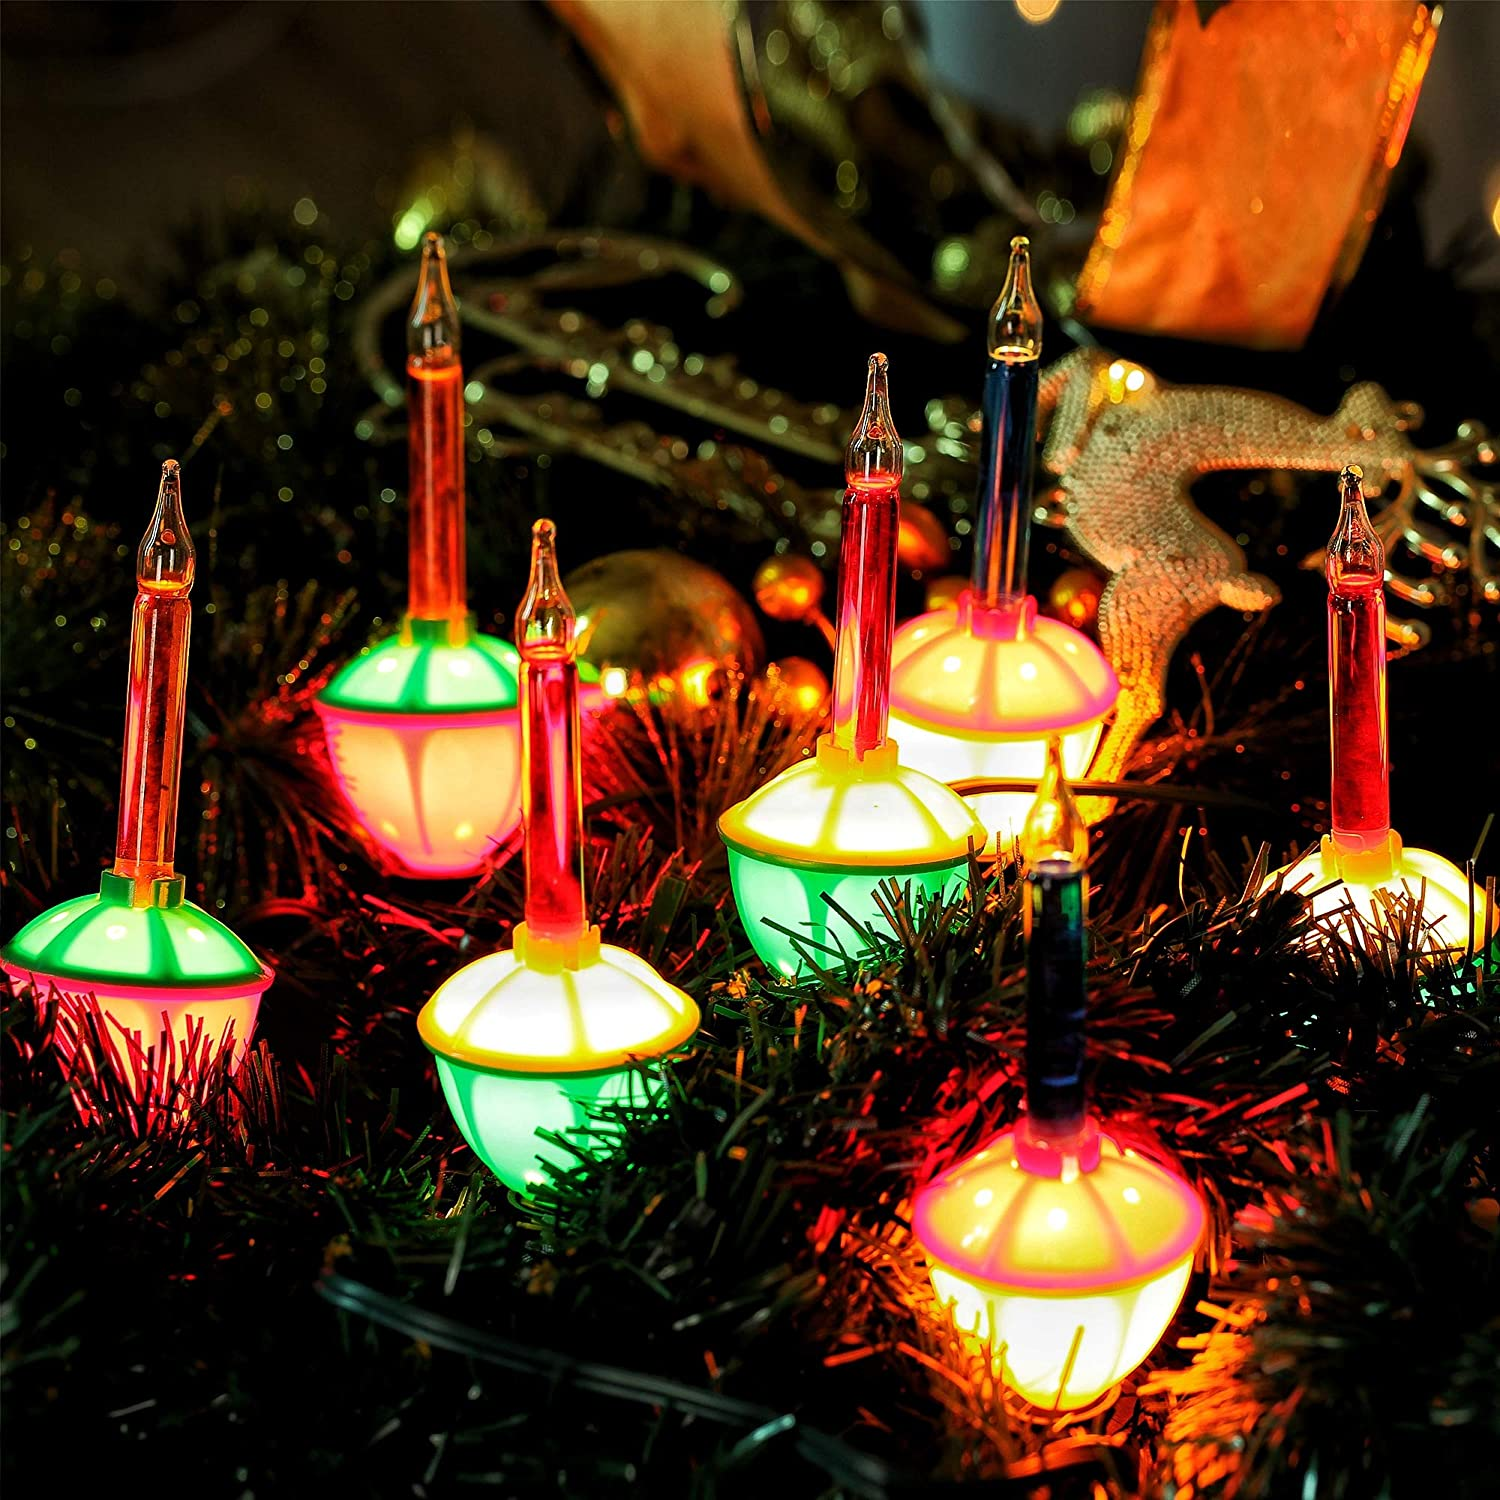 7 Pack Replacement Bubble Lights Bulbs Multi-Color Bubble Fluid Lights Bulbs and Blue Orange Vintage Christmas Lights for Xmas Christmas Tree Decorations Red C7//E12 Candelabra Base